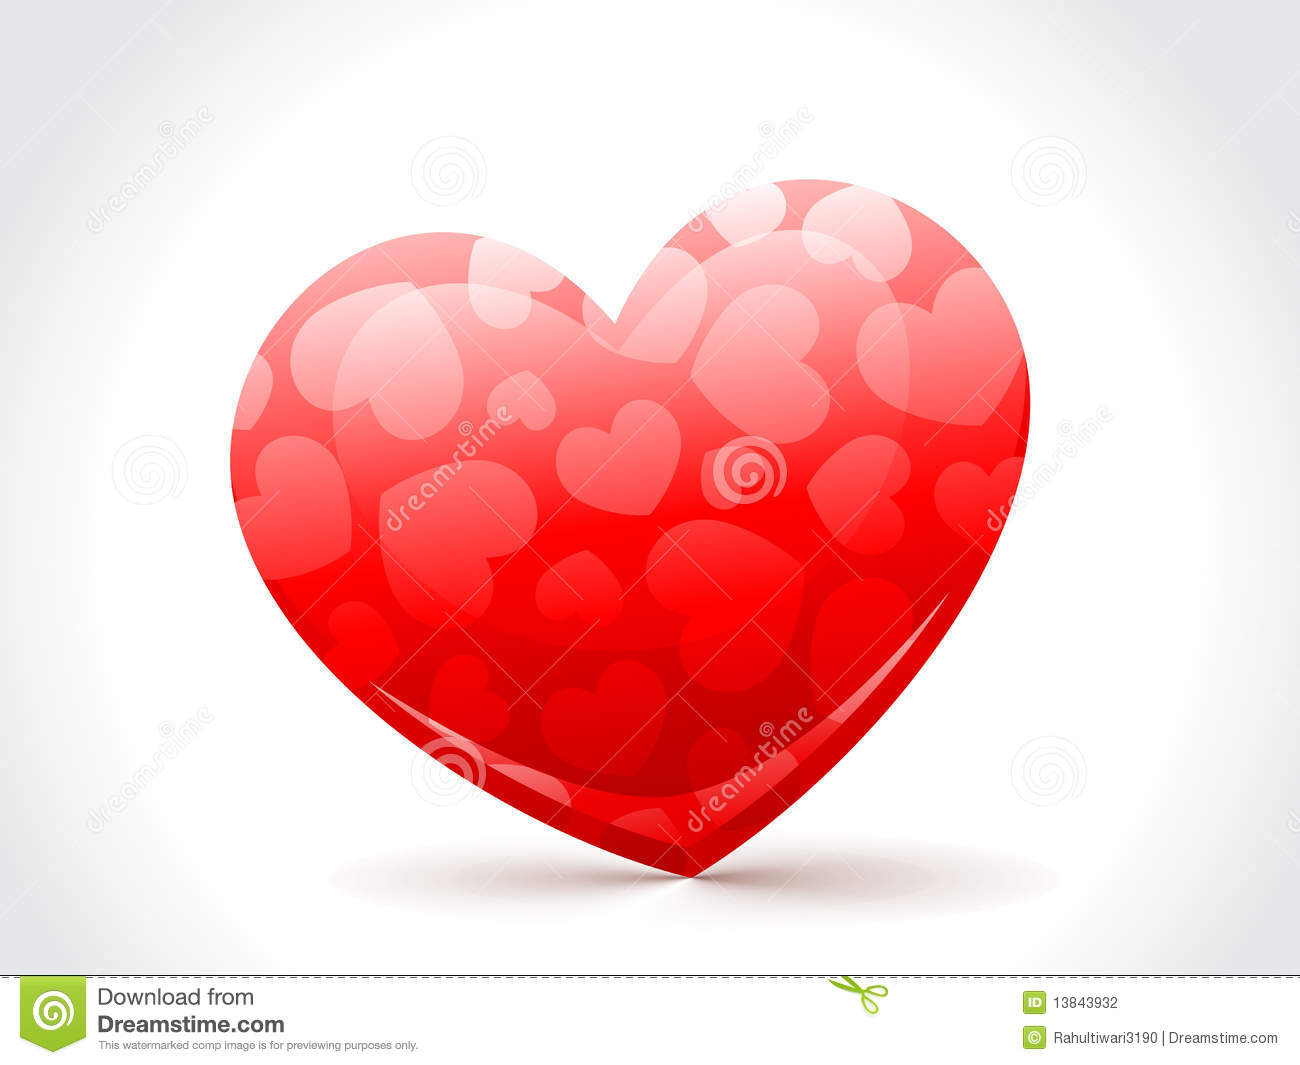 A Beautiful Red Heart To Love Stock Vector - Image: 13843932